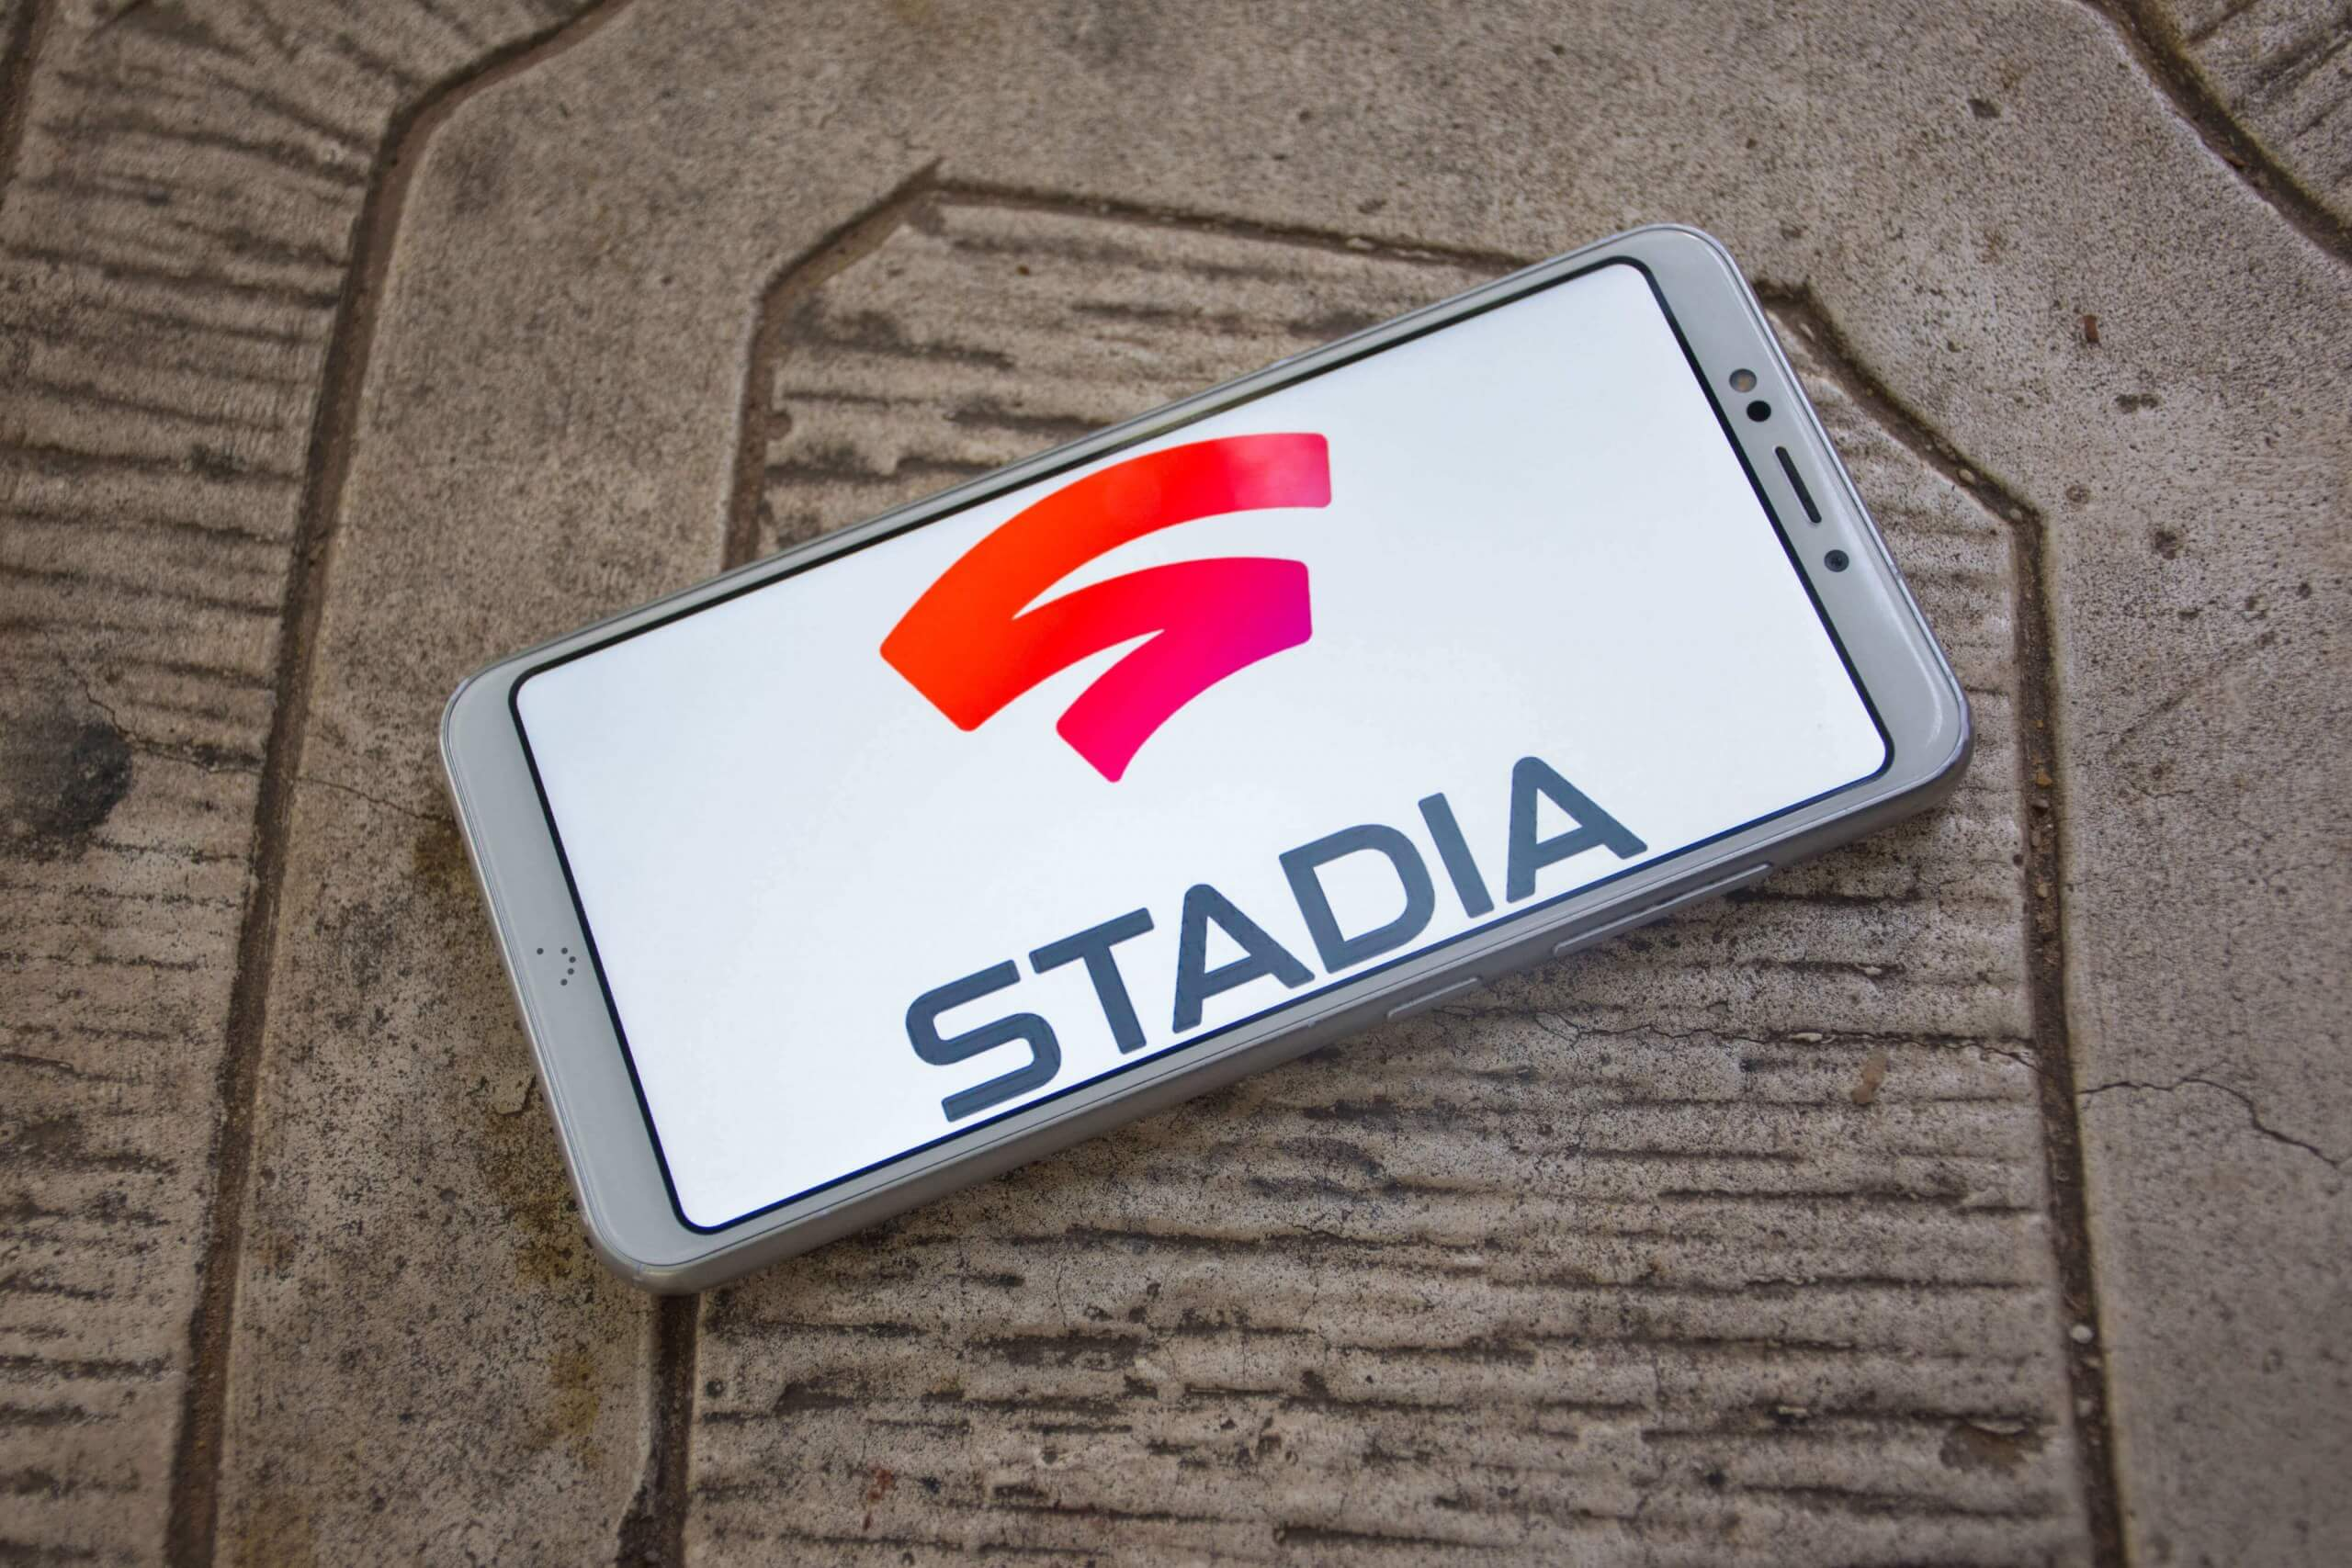 You may have to wait to play on Google Stadia, even if you pre-ordered